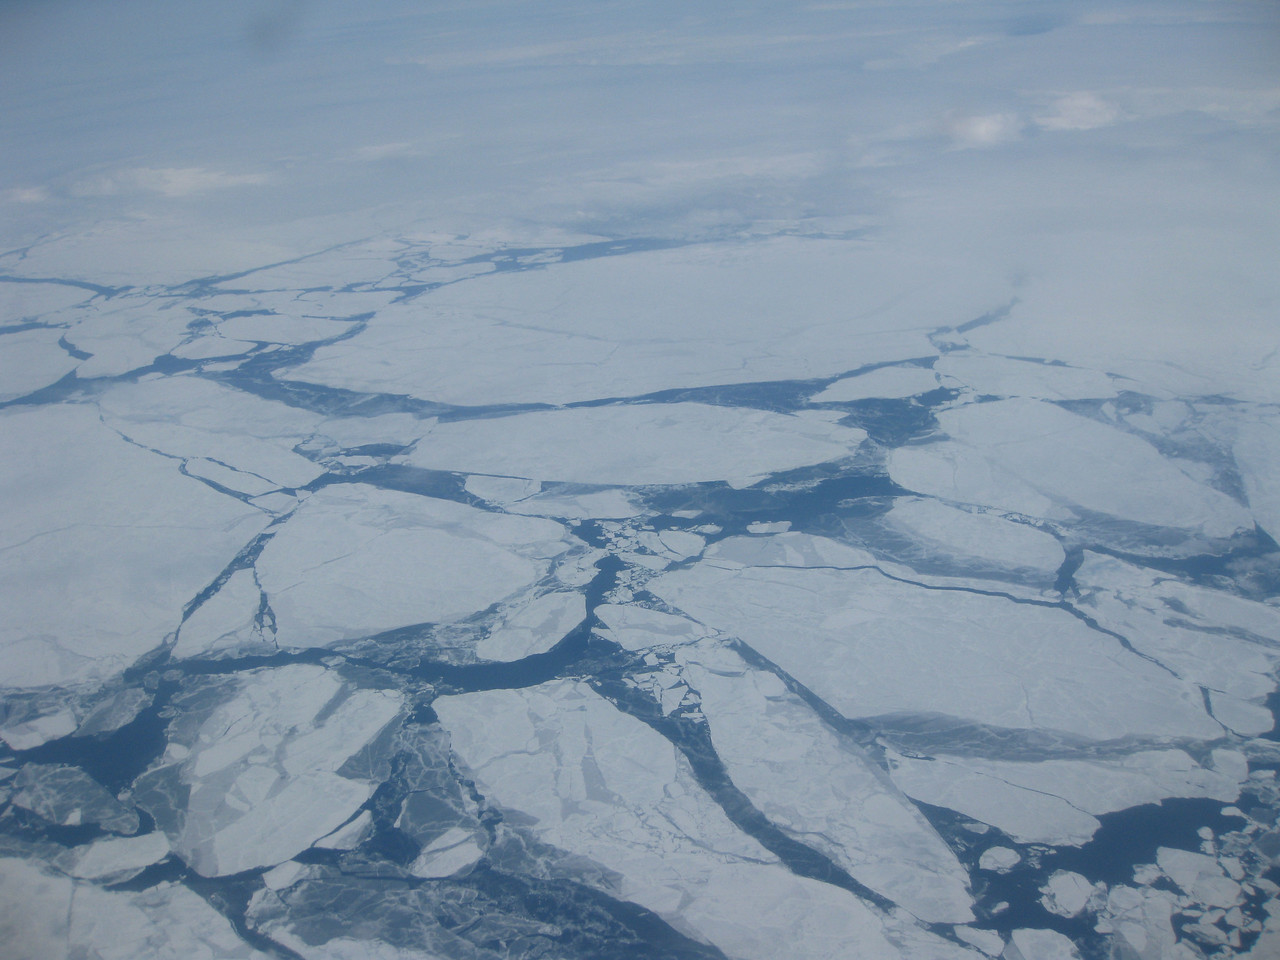 Flying over the Bering Sea.